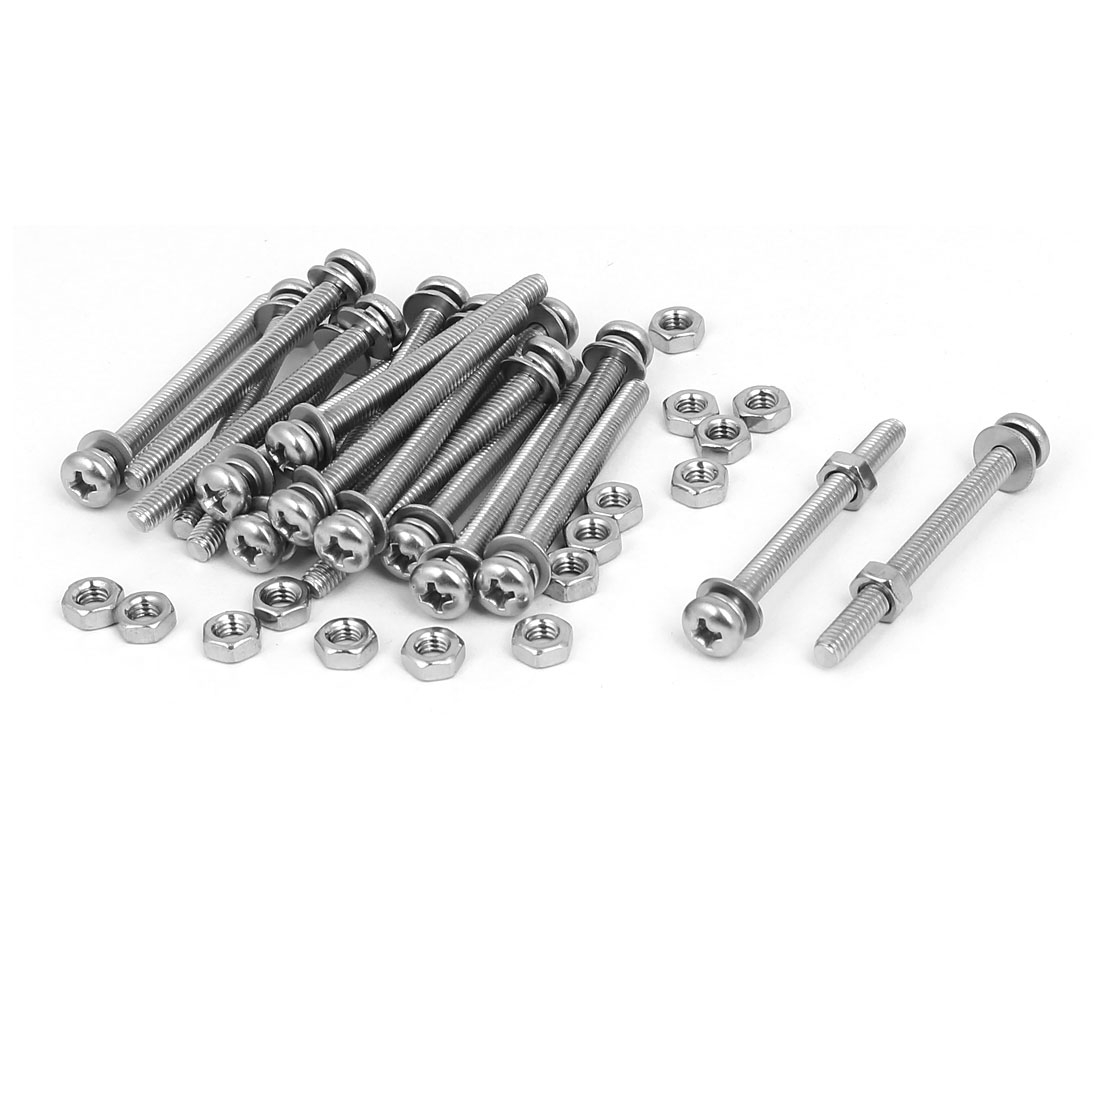 M4 x 45mm 304 Stainless Steel Phillips Pan Head Screws Nuts w Washers 20 Sets